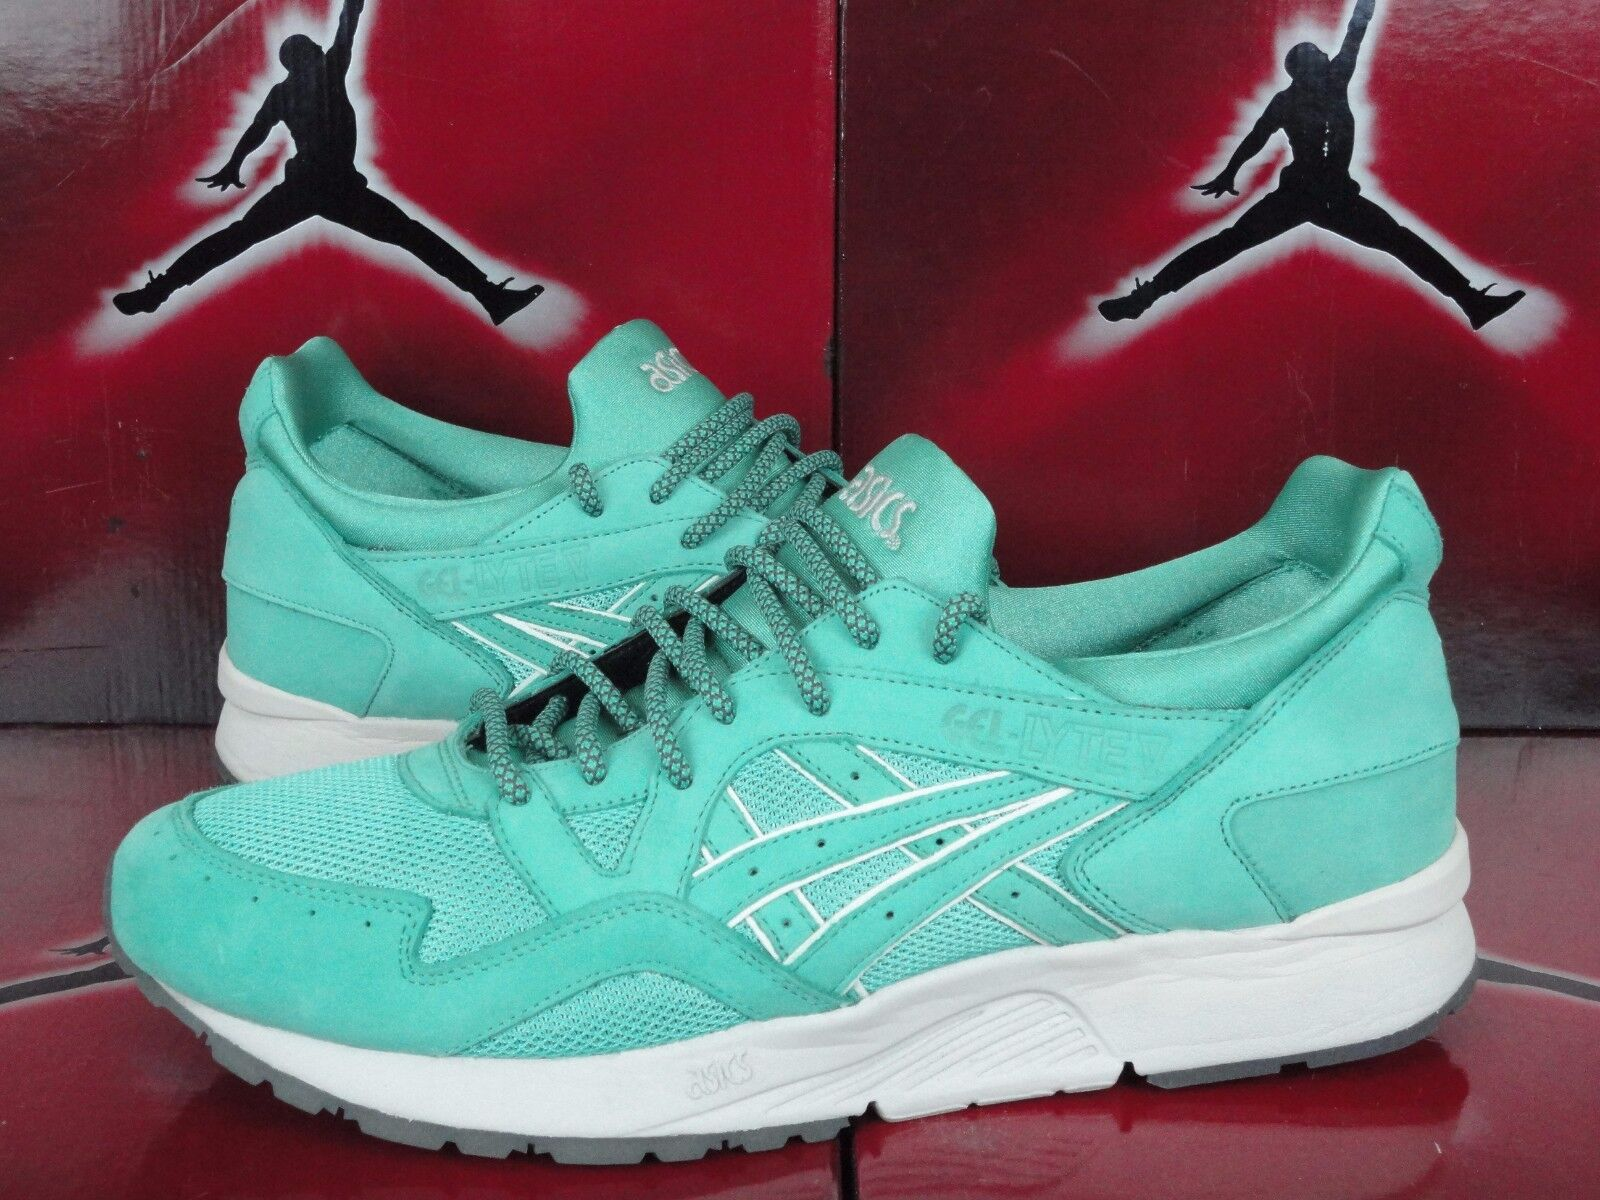 ASICS RONNIE FIEG GEL LYTE V MINT LEAF QS Price reduction Special limited time